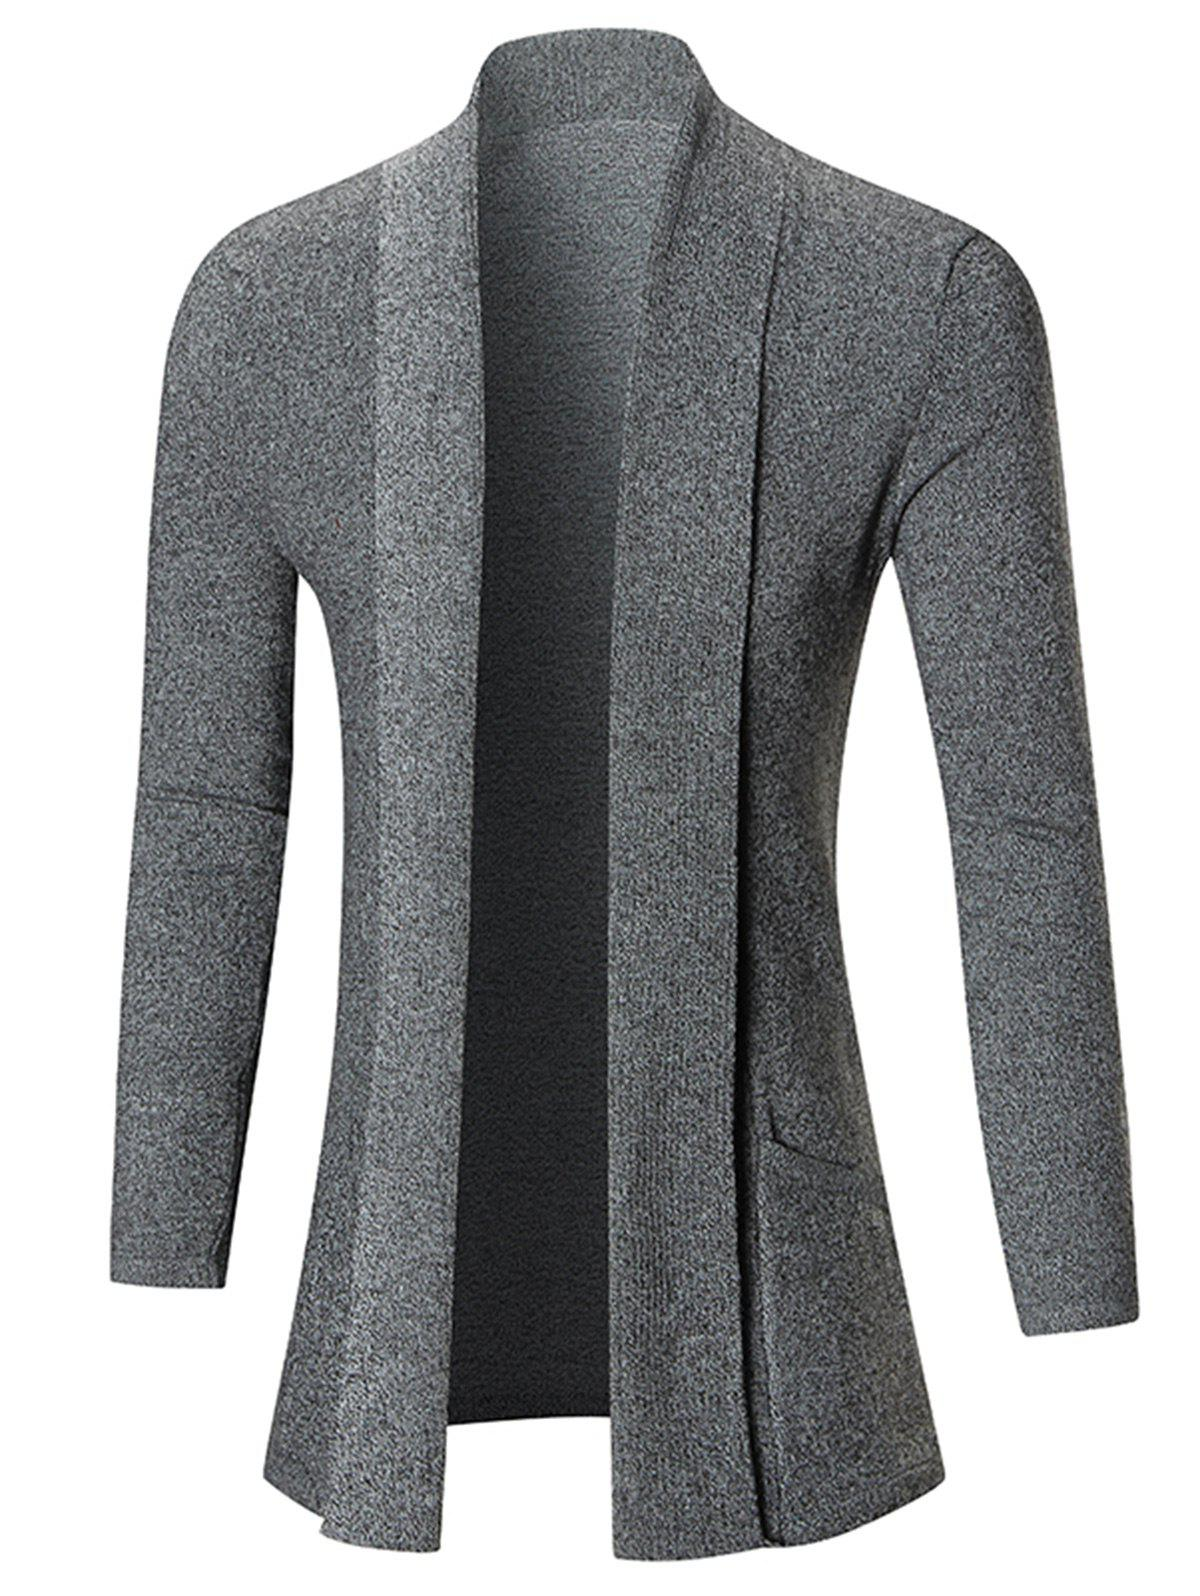 Store Open Front Shawl Collar Heathered Cardigan